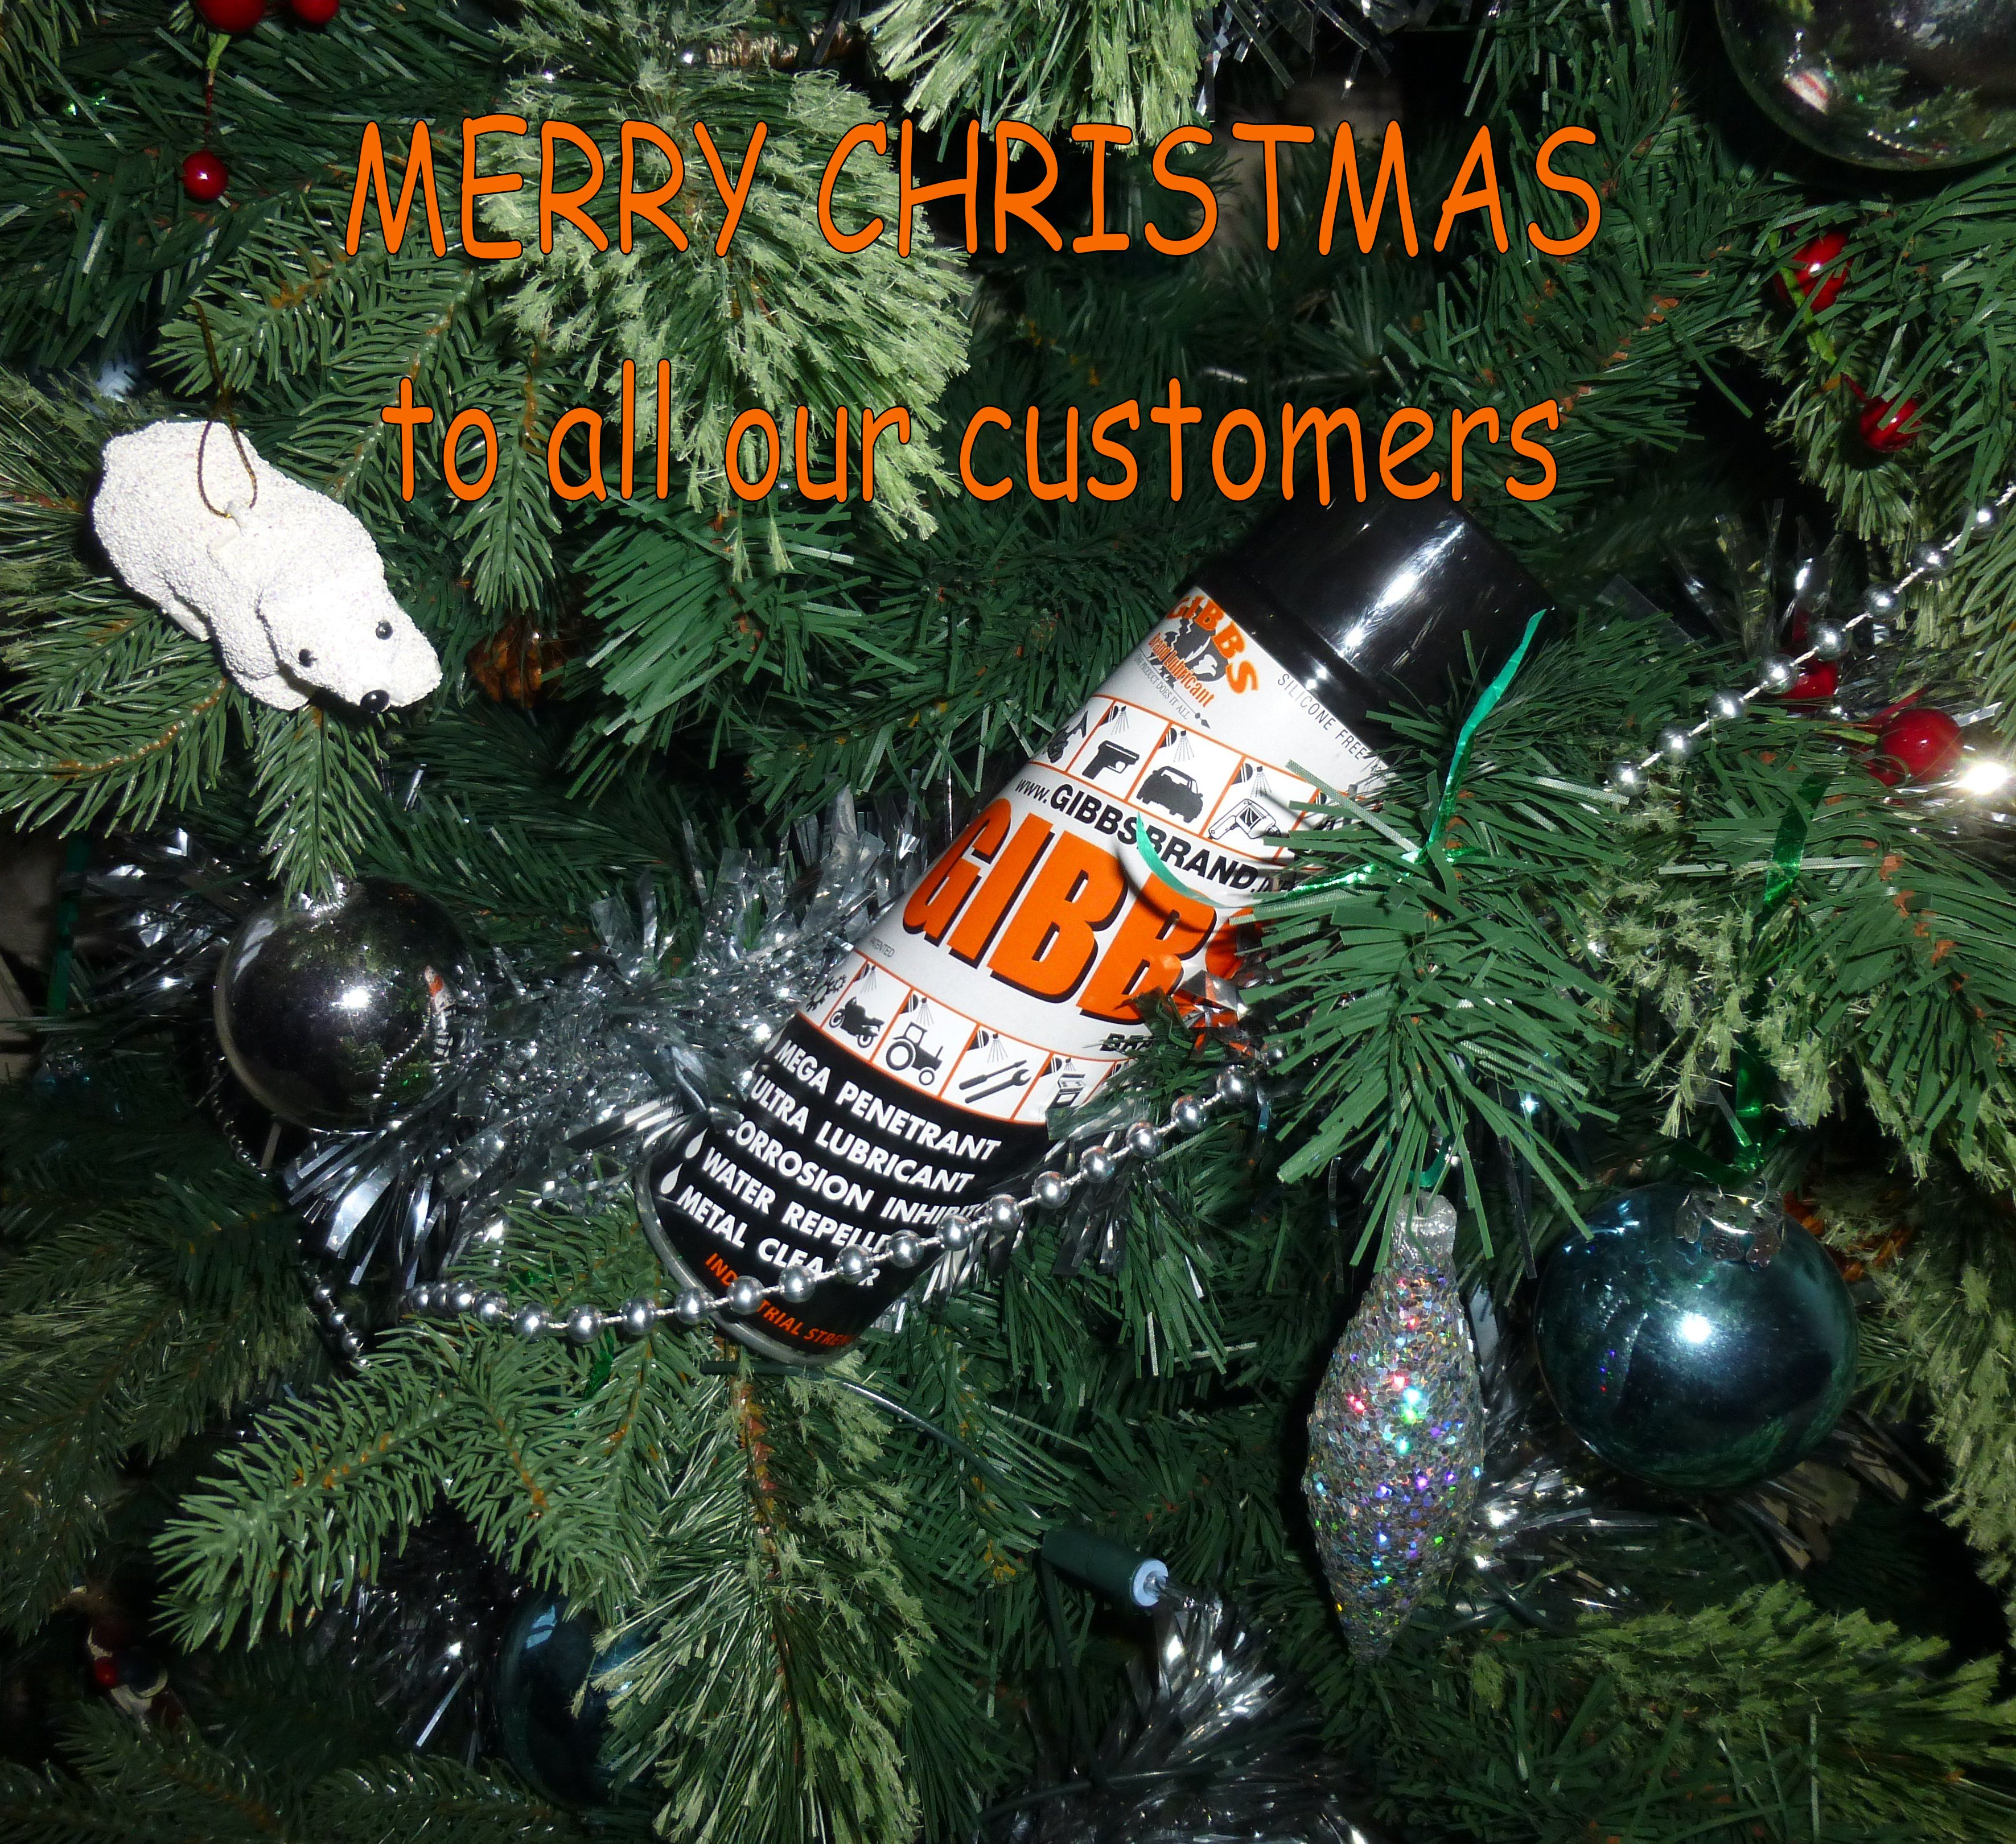 Seasons Greetings To All Our Customers The Gibbs Brand Blog